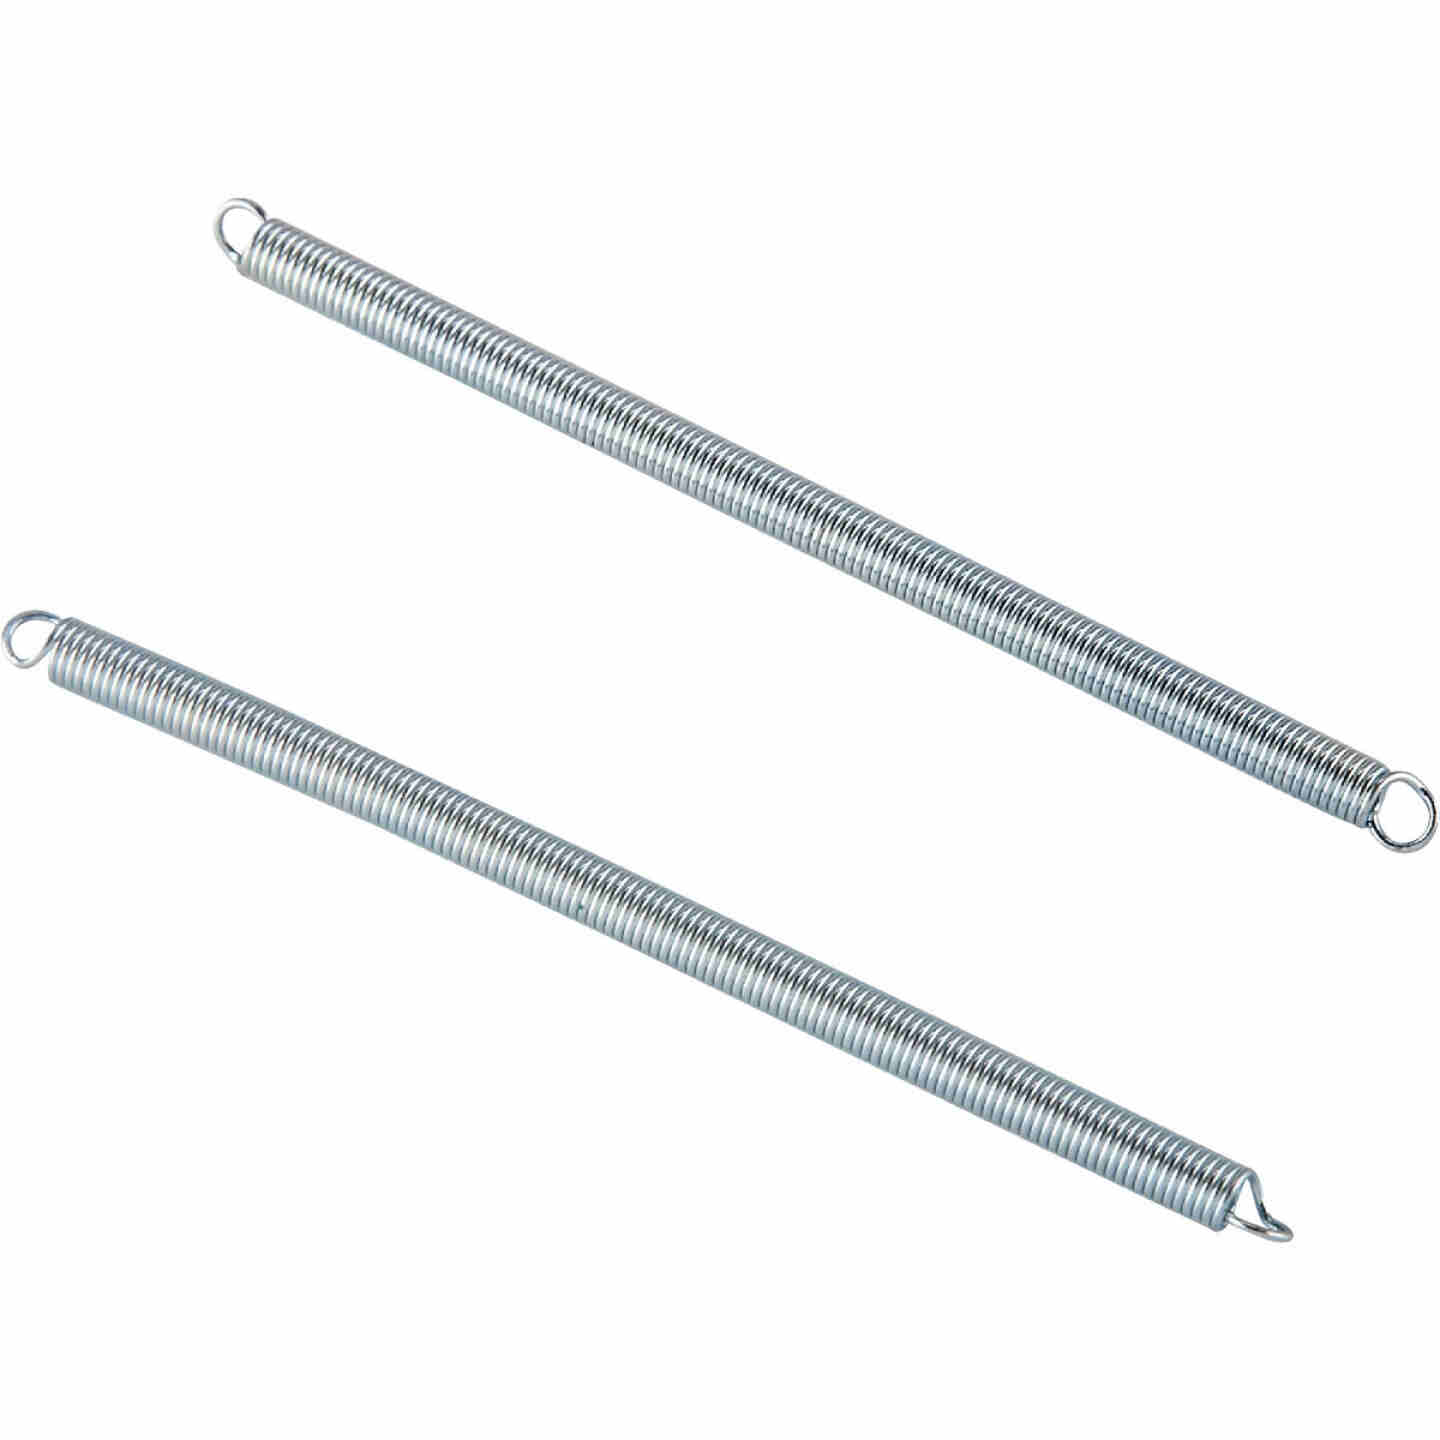 Century Spring 2-7/8 In. x 3/4 In. Extension Spring (2 Count) Image 1